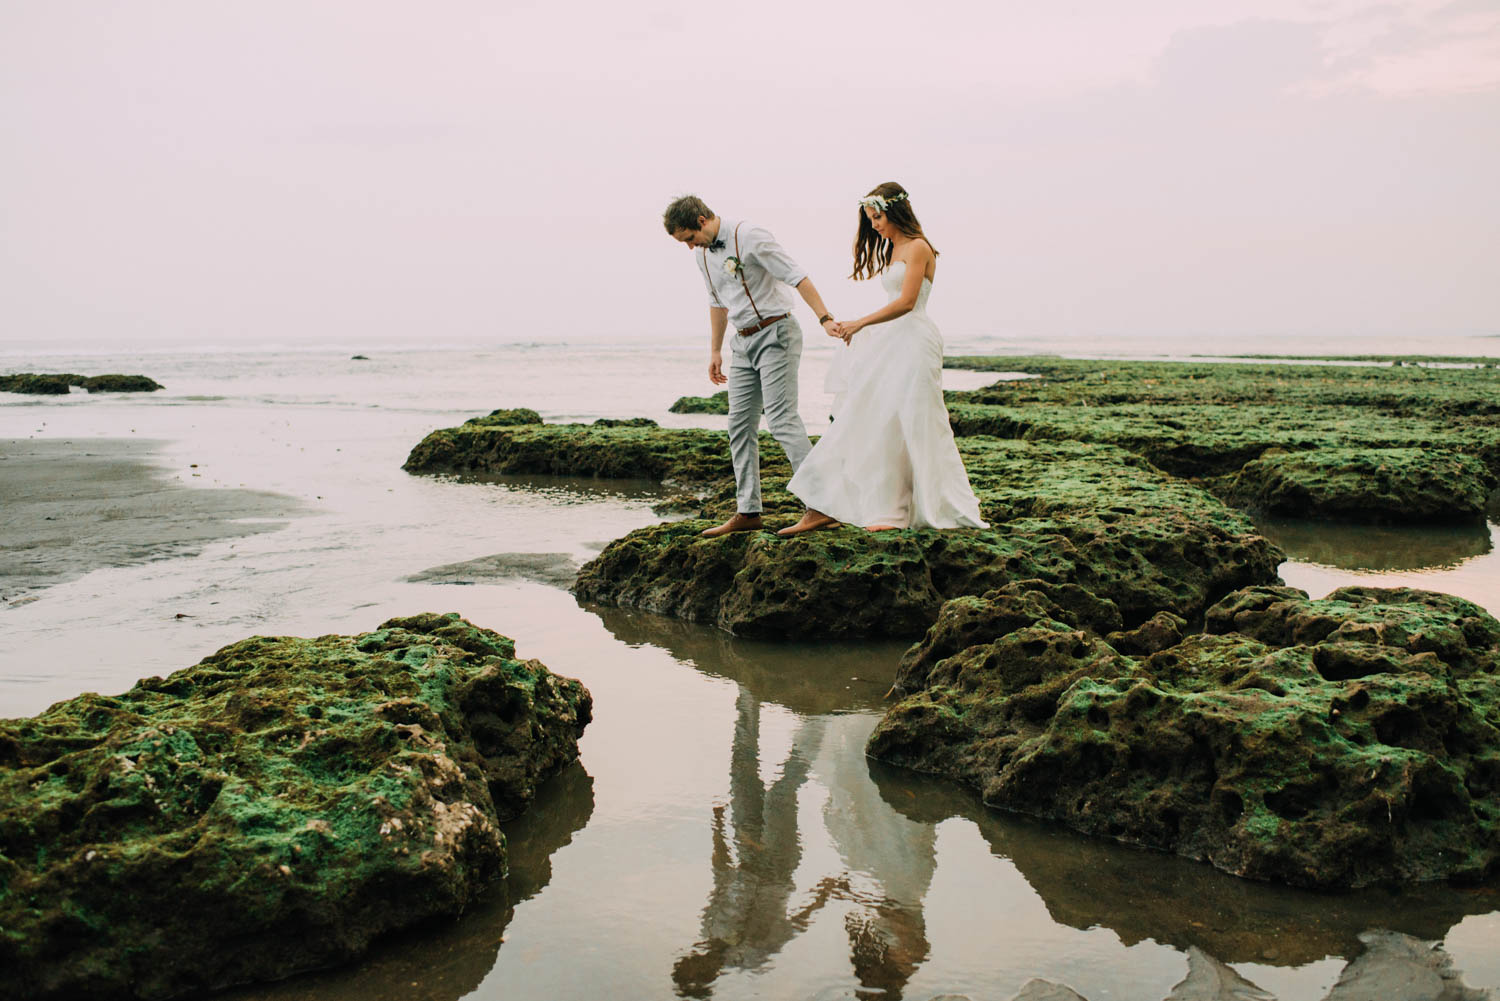 baliwedding-destination-diktatphotography-weddinginbali-baliweddingphotographer-villapusphapuri-91